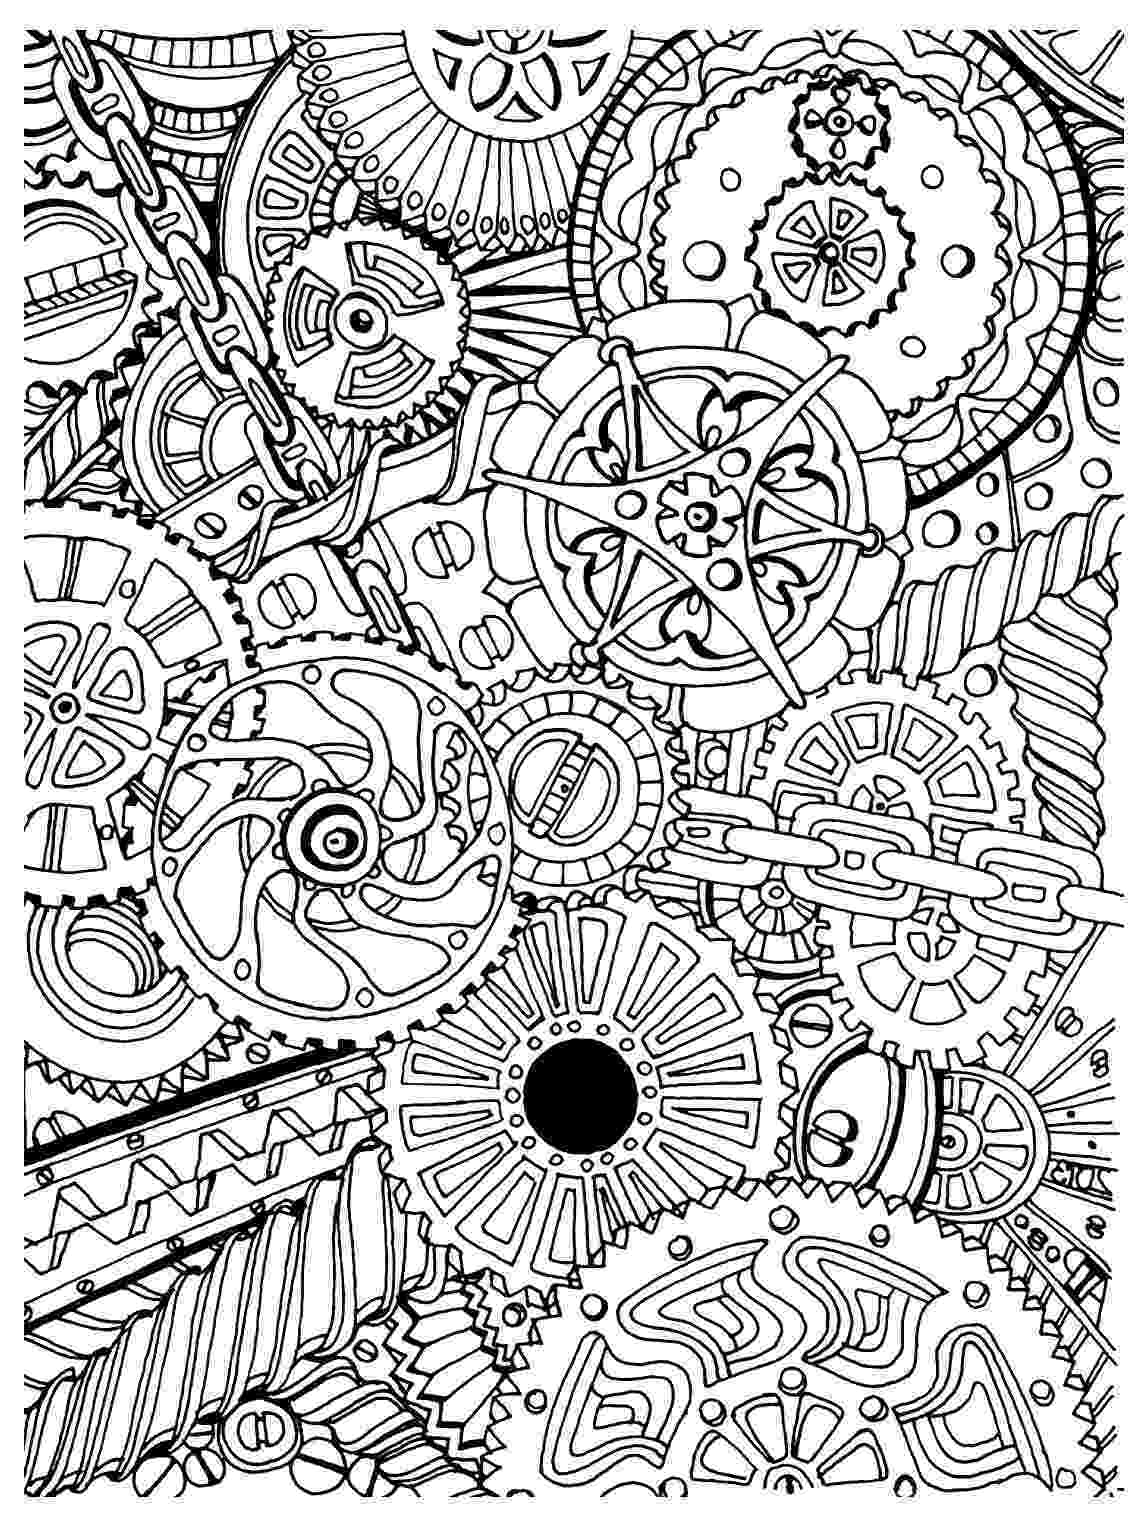 printable coloring pages for adults stress stress coloring pages for adults free printable stress printable pages adults coloring stress for